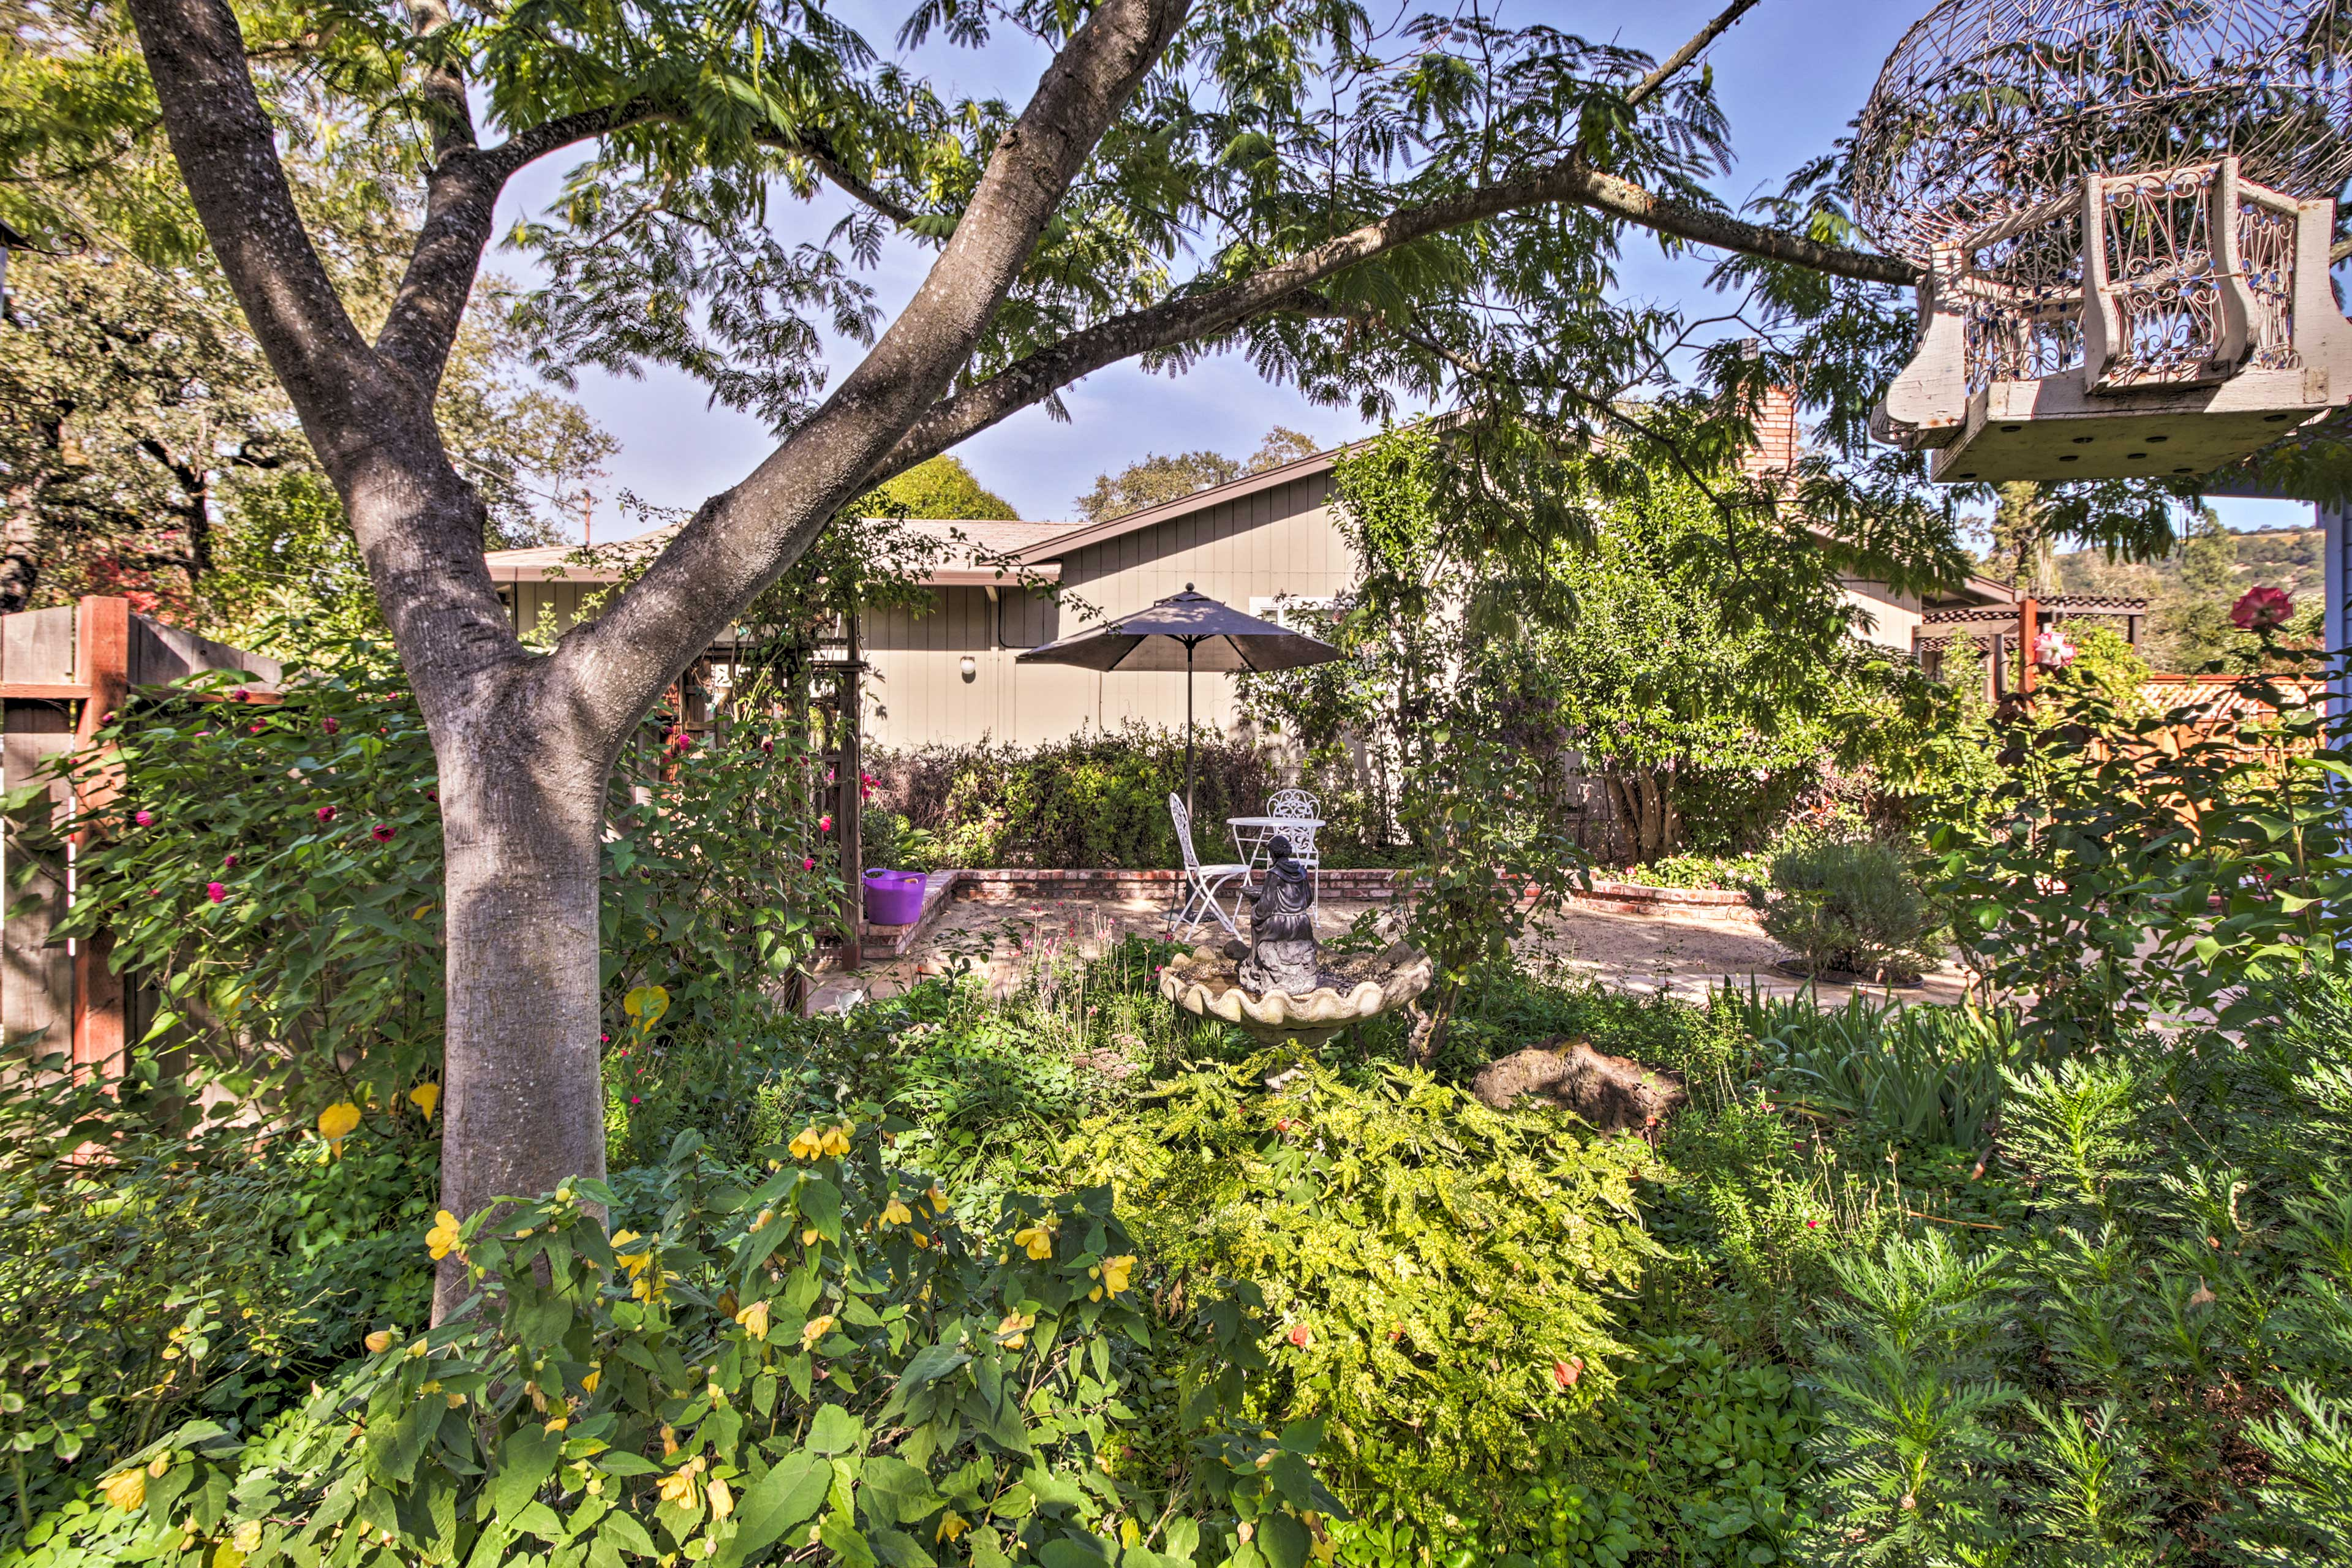 This home is located in the heart of Boyes Hot Springs near Sonoma Plaza.